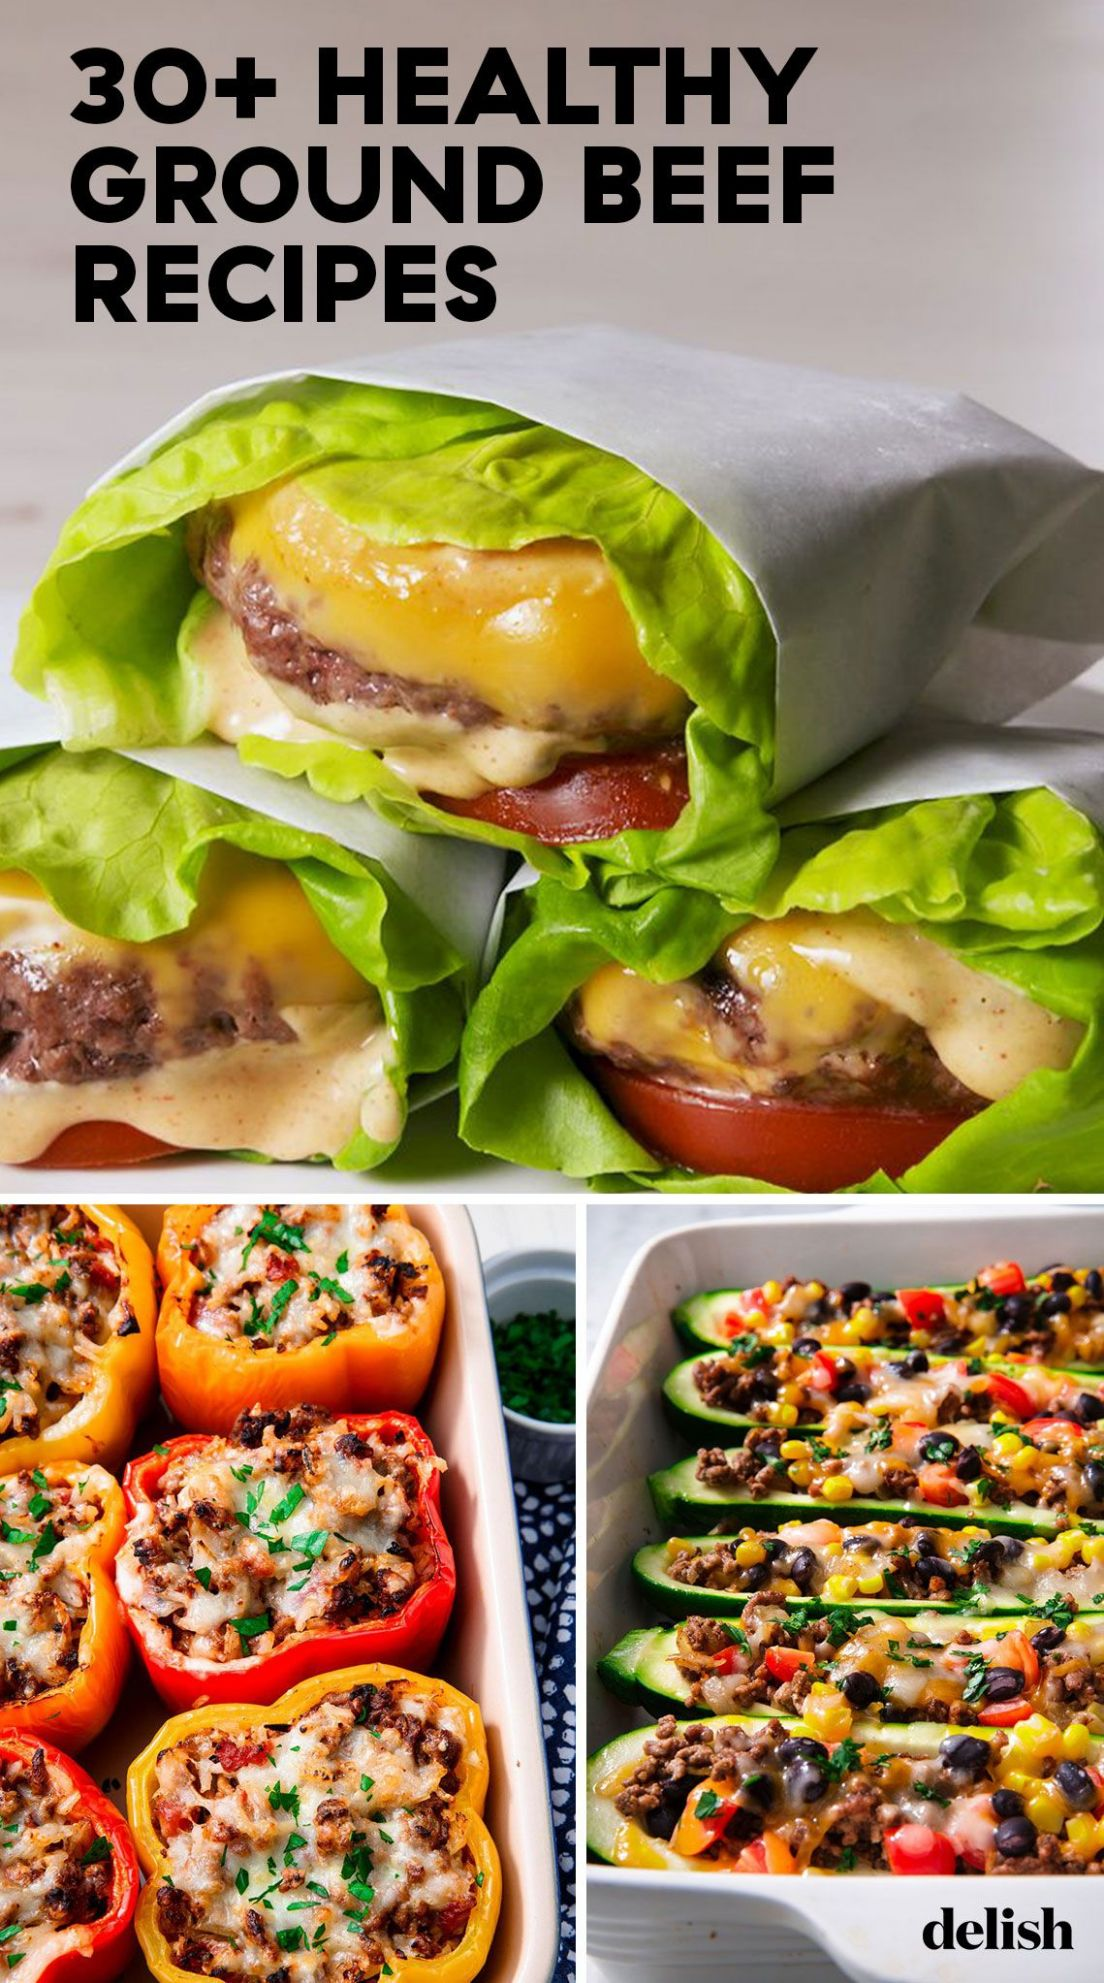 11+ Healthy Ground Beef Recipes - Easy Beef Healthy Ideas You'll Love